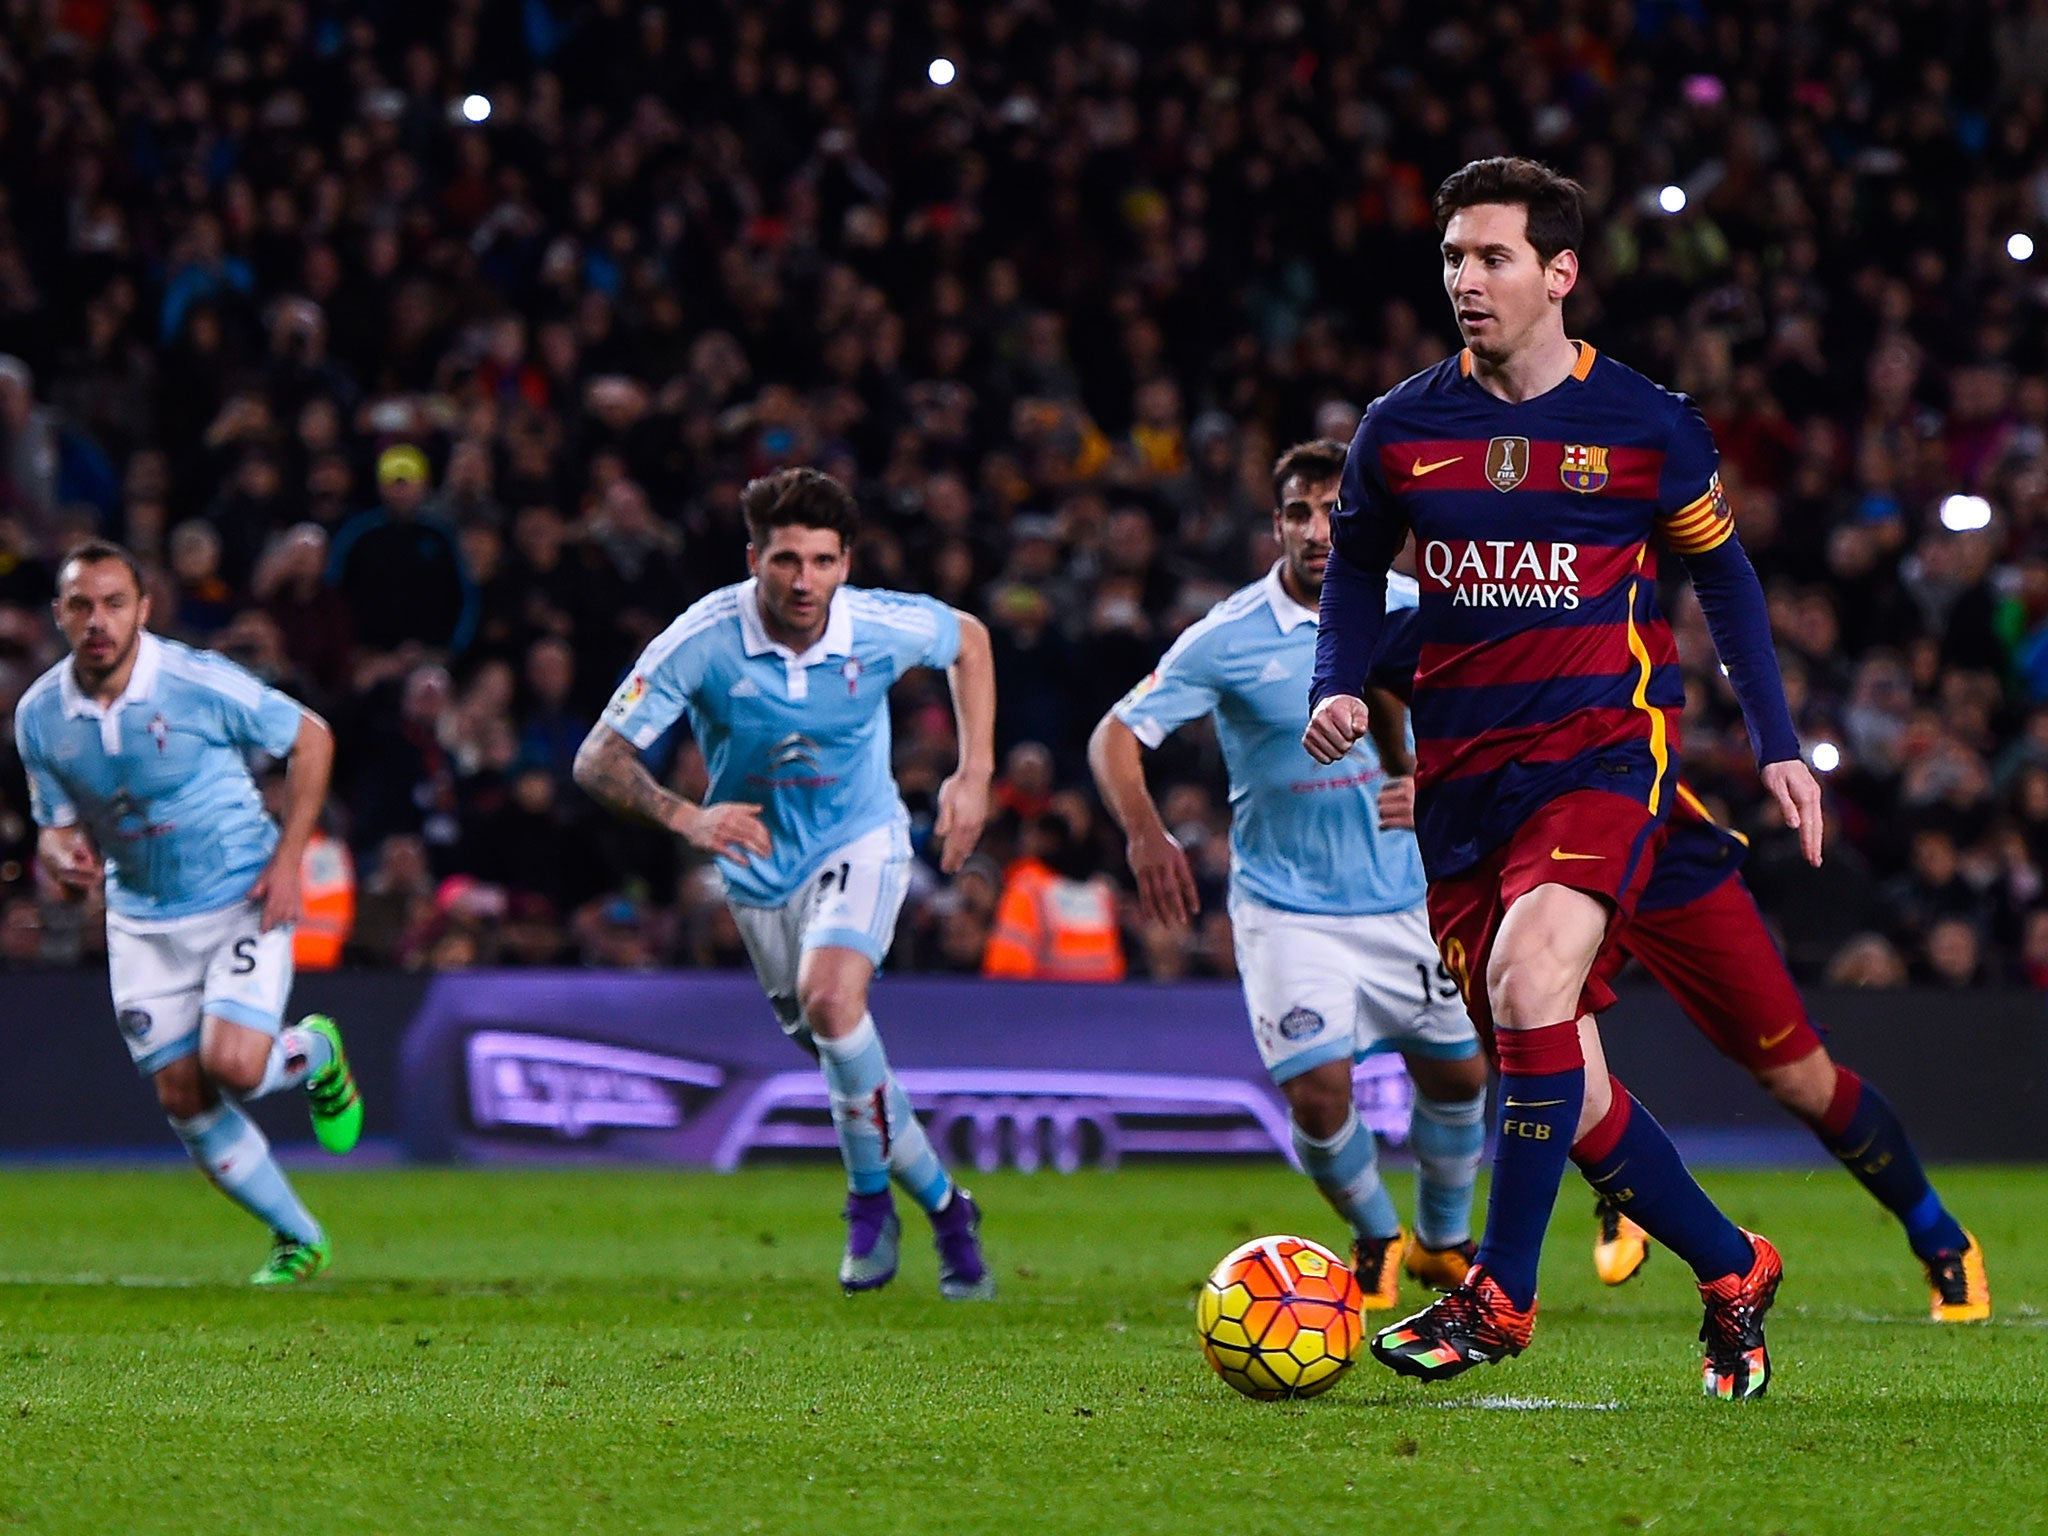 Lionel Messi penalty: Barcelona forward passes to Luis